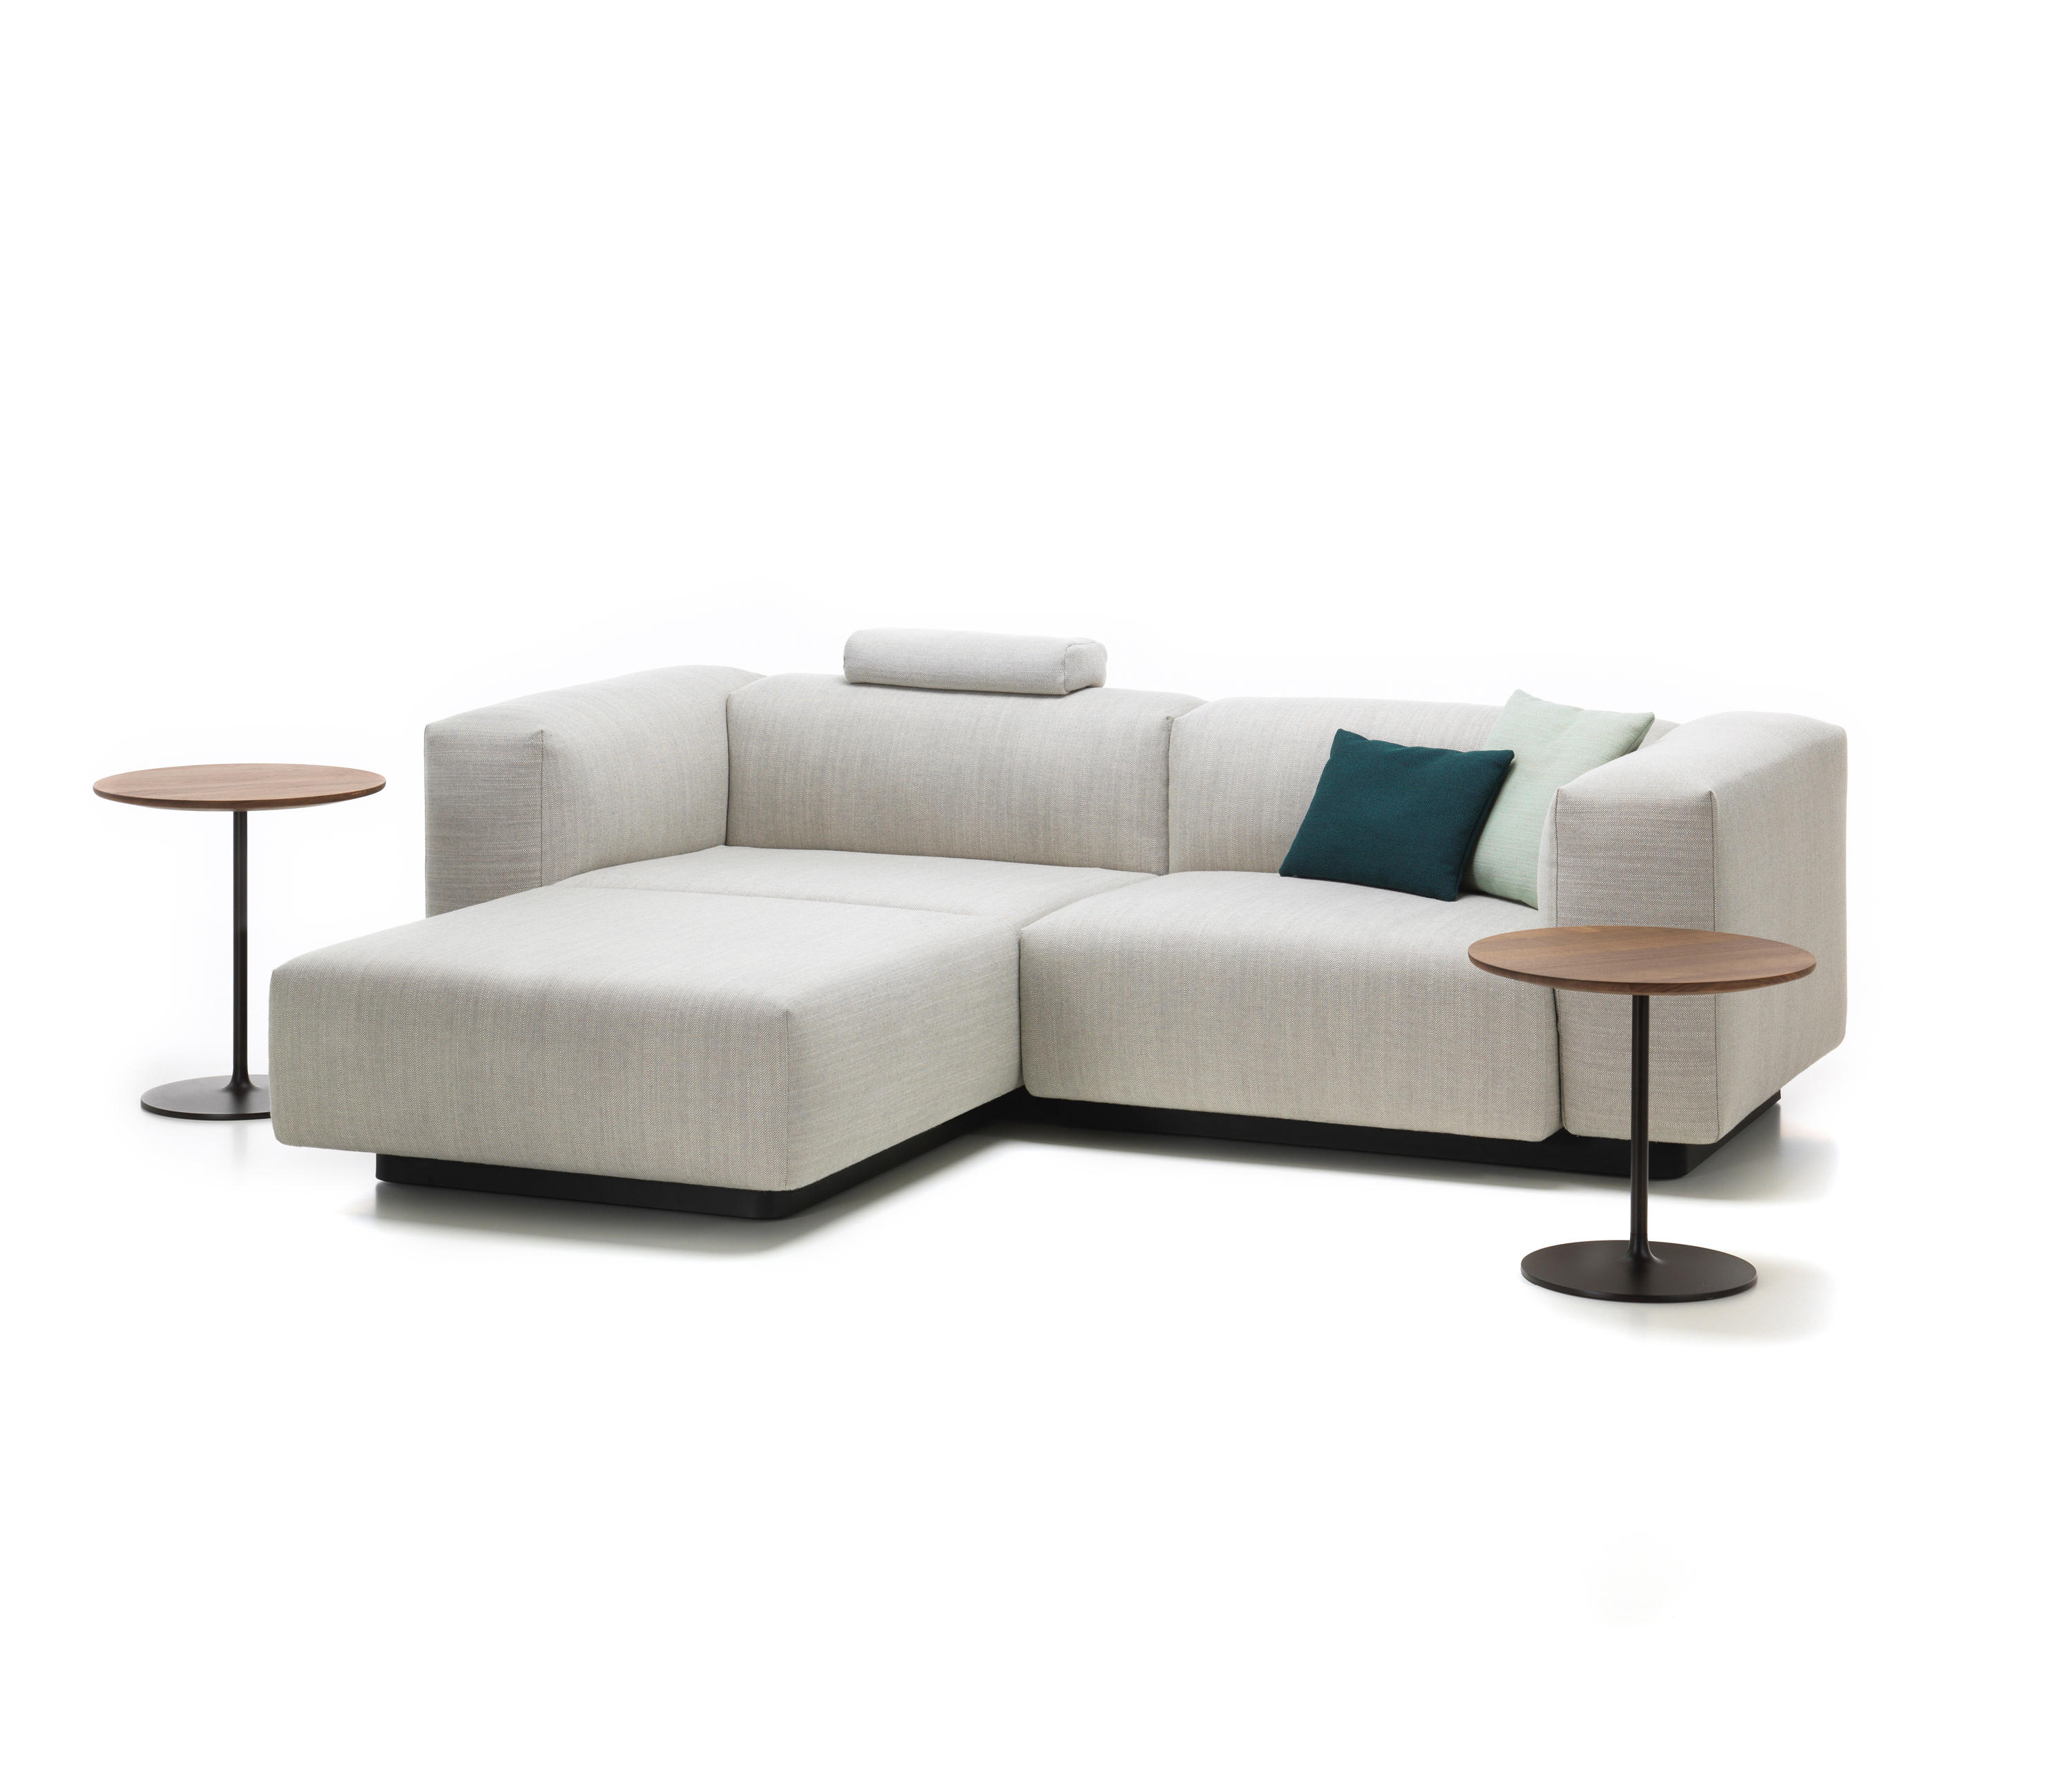 2 seater sofa with chaise sofa fascinating 2 seater chaise for 1 seater chaise lounge